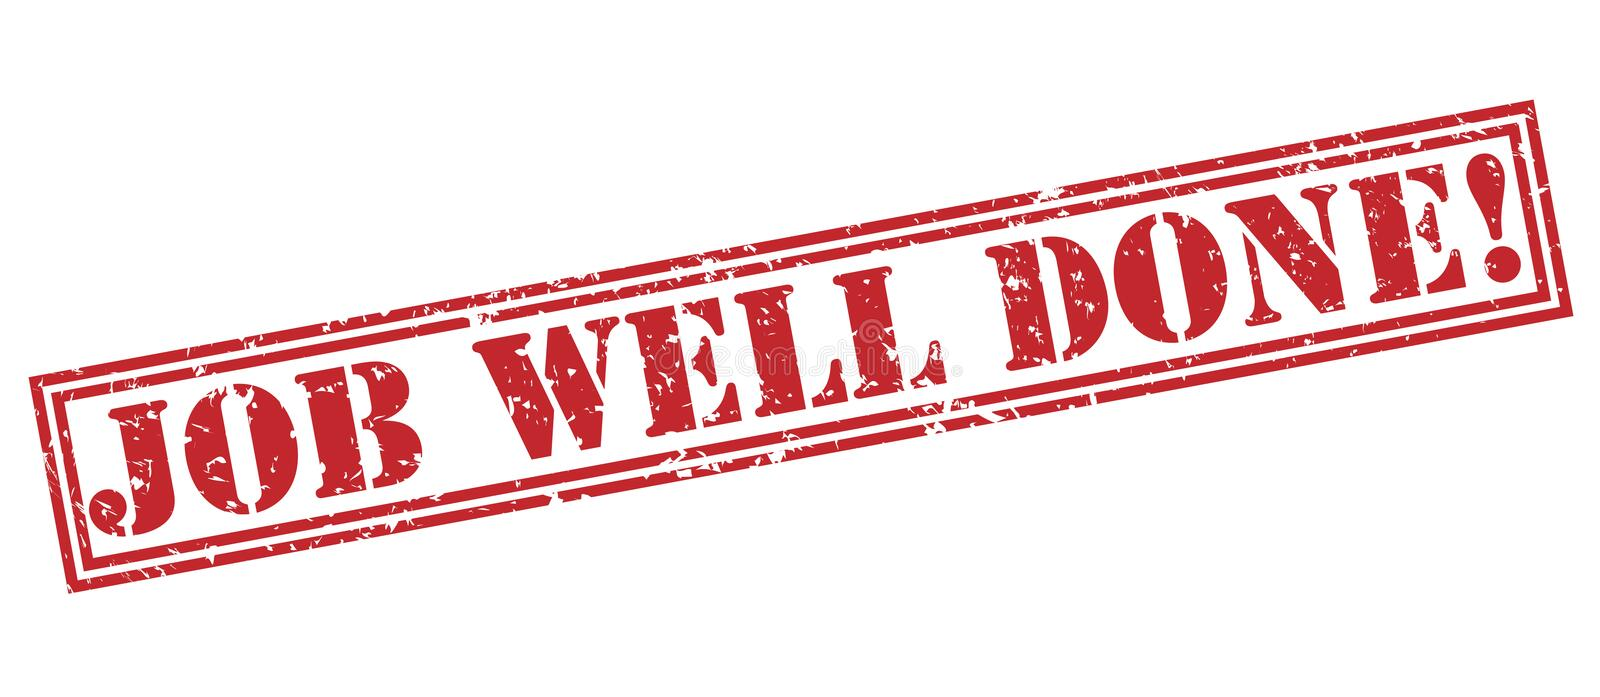 Download Job Well Done! Red Stamp Stock Illustration. Image Of Well    73707375  Job Well Done